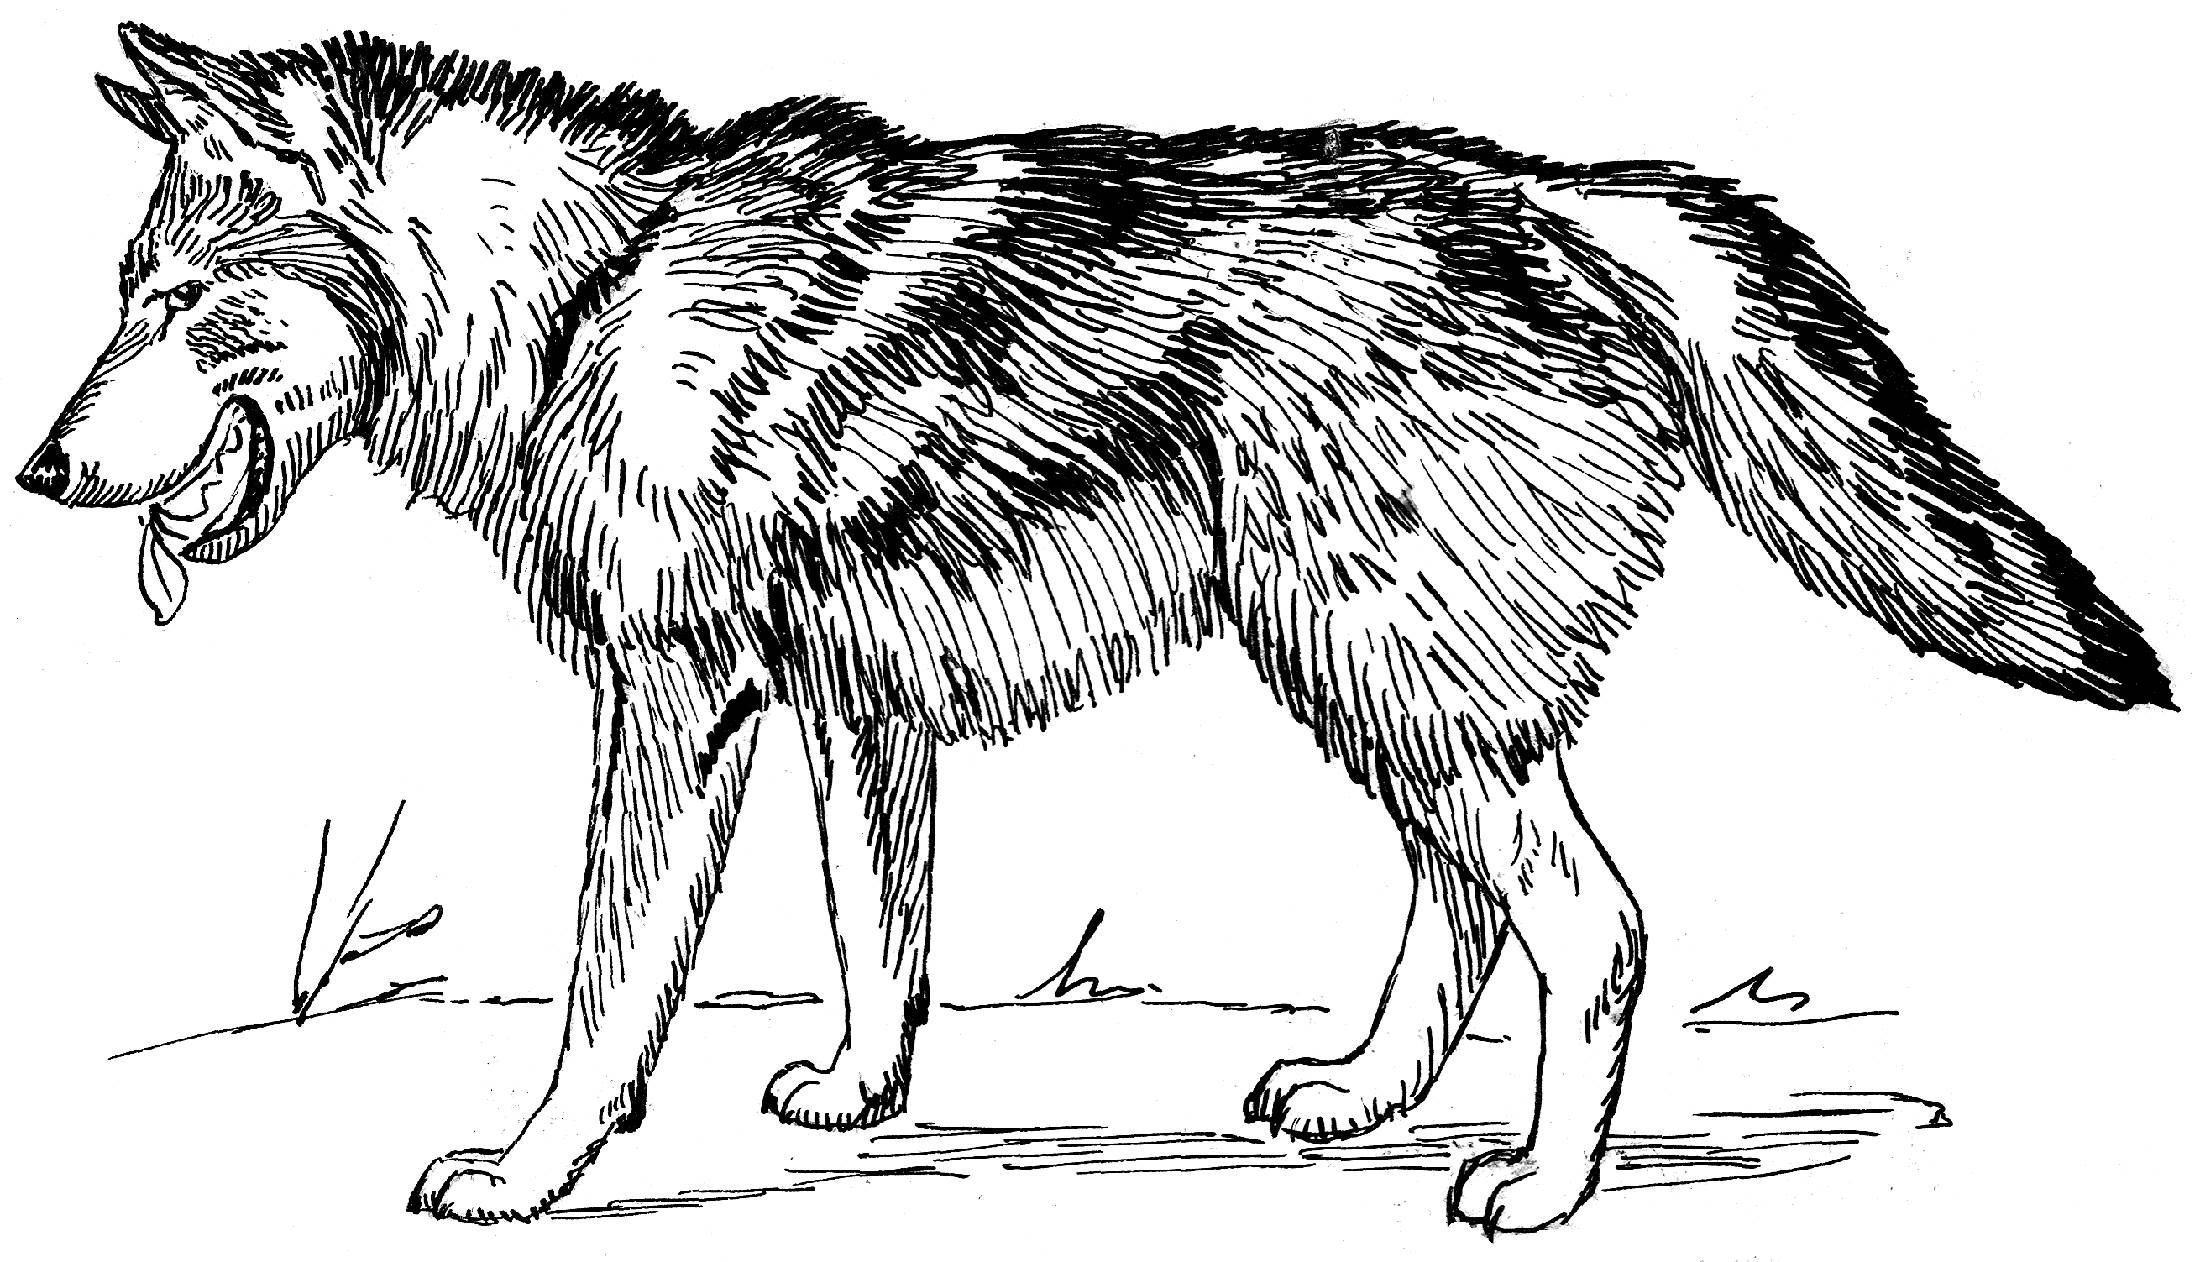 Coloring pages of wolves - Printable Colouring Pages Of Wolves High Quality Coloring Pages